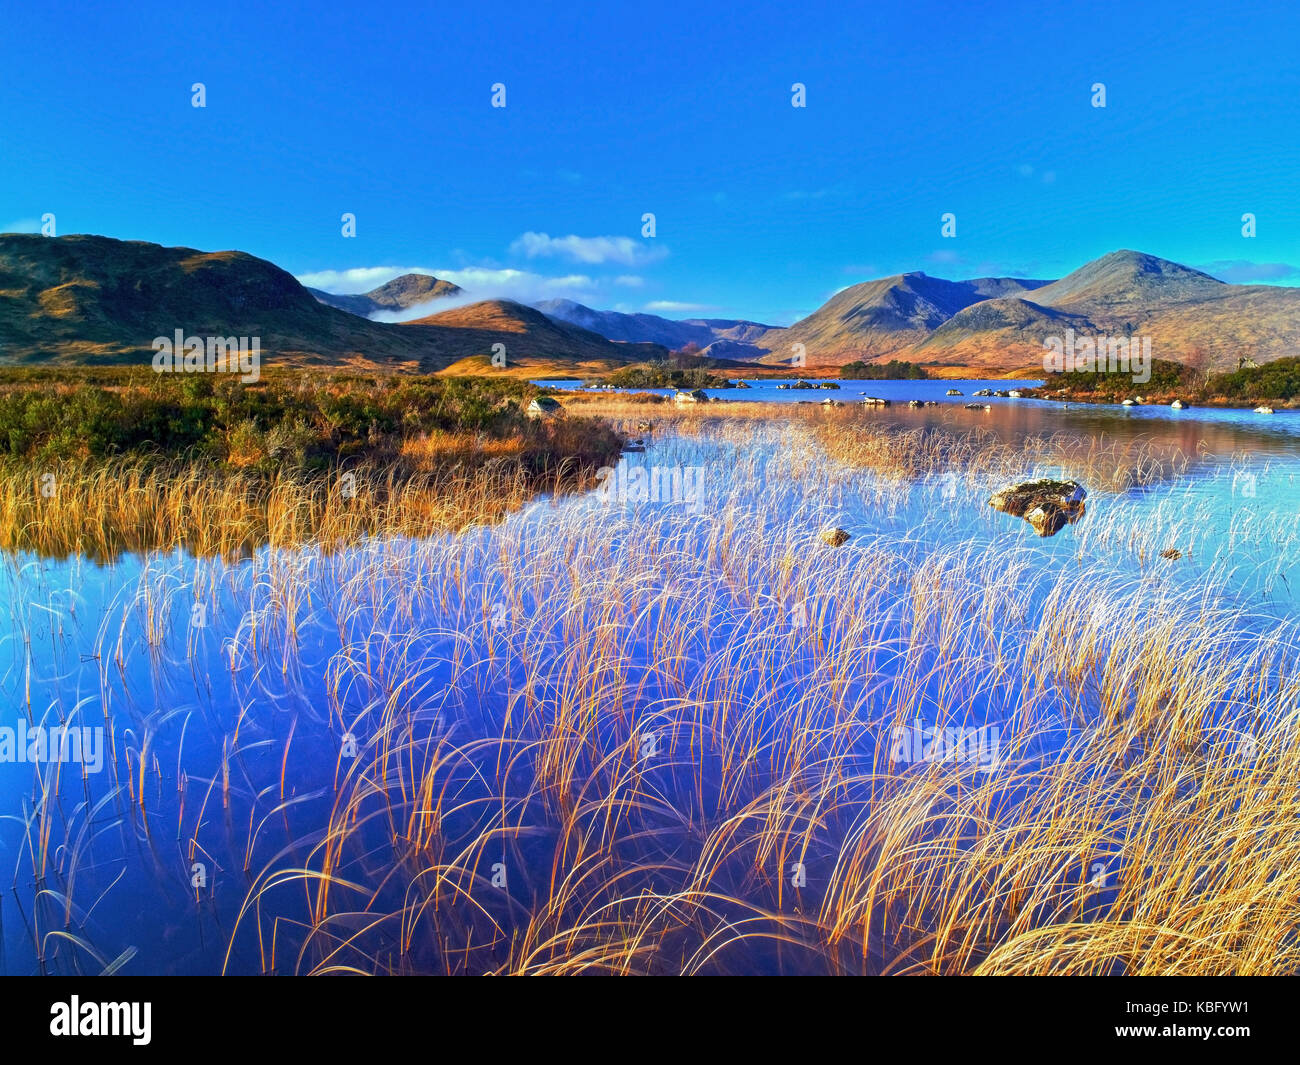 A sunny winter view of Loch na h-Achlaise on Rannoch Moor, near Glen Coe in the Scottish Highlands - Stock Image